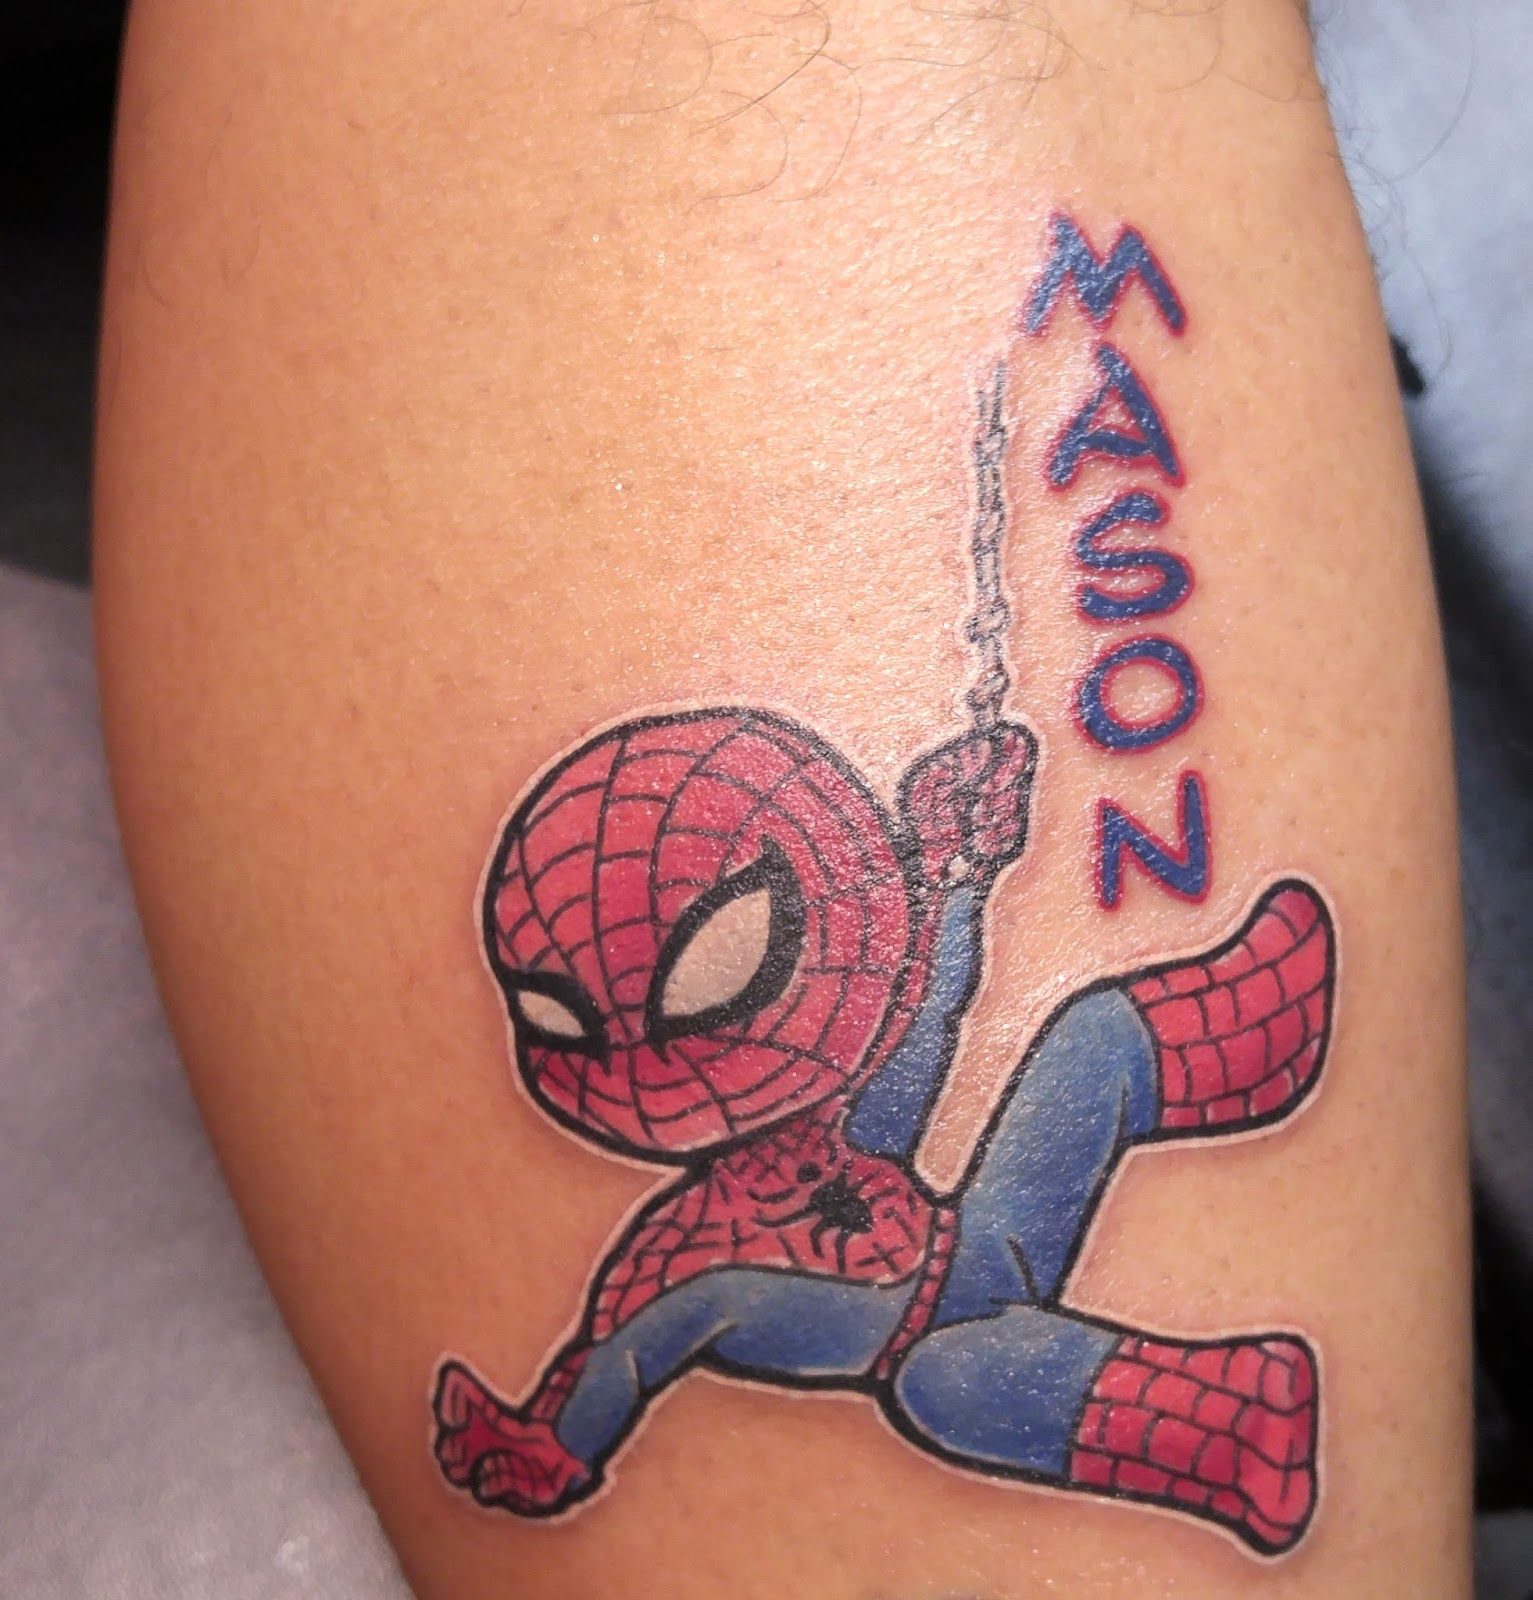 b209c98c0 Cool small Spiderman tattoo done by our guest artist Rob! | Tattoo ...